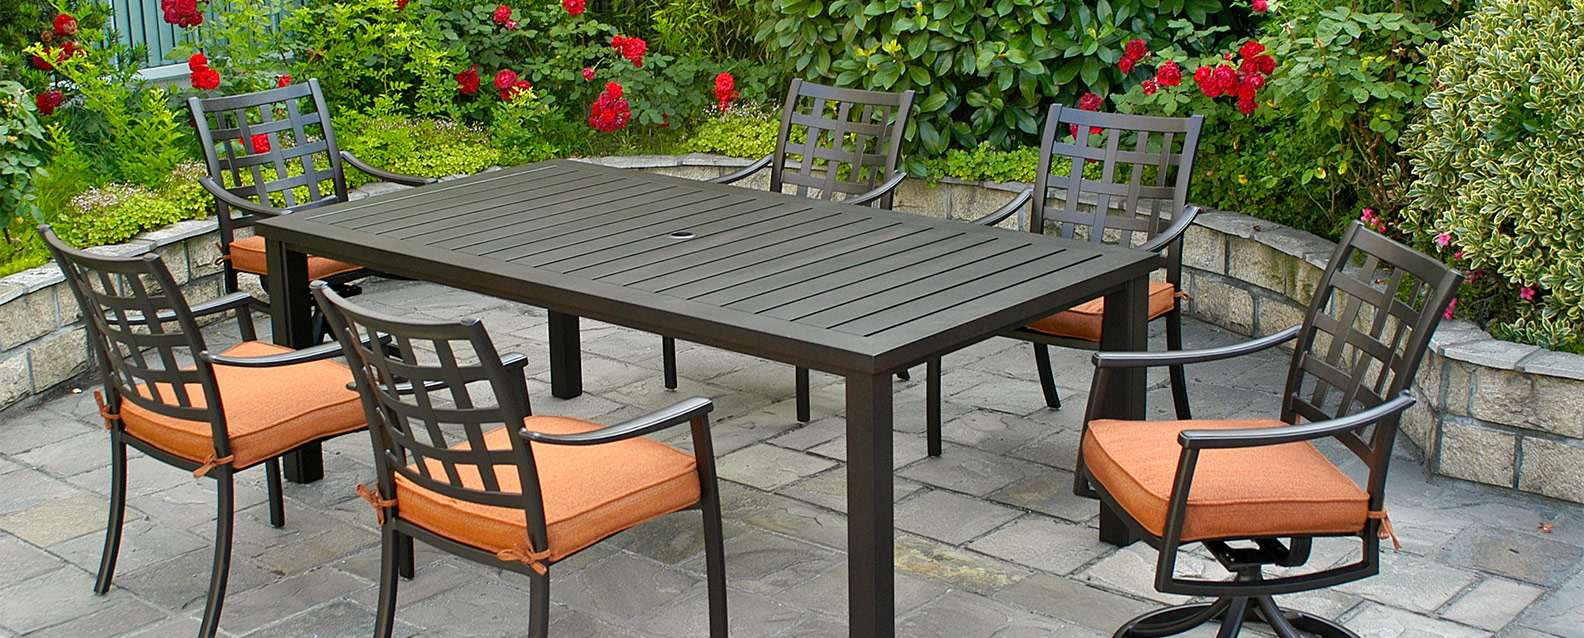 patio grand collection tuscany manufacturers outdoor furniture hanamint